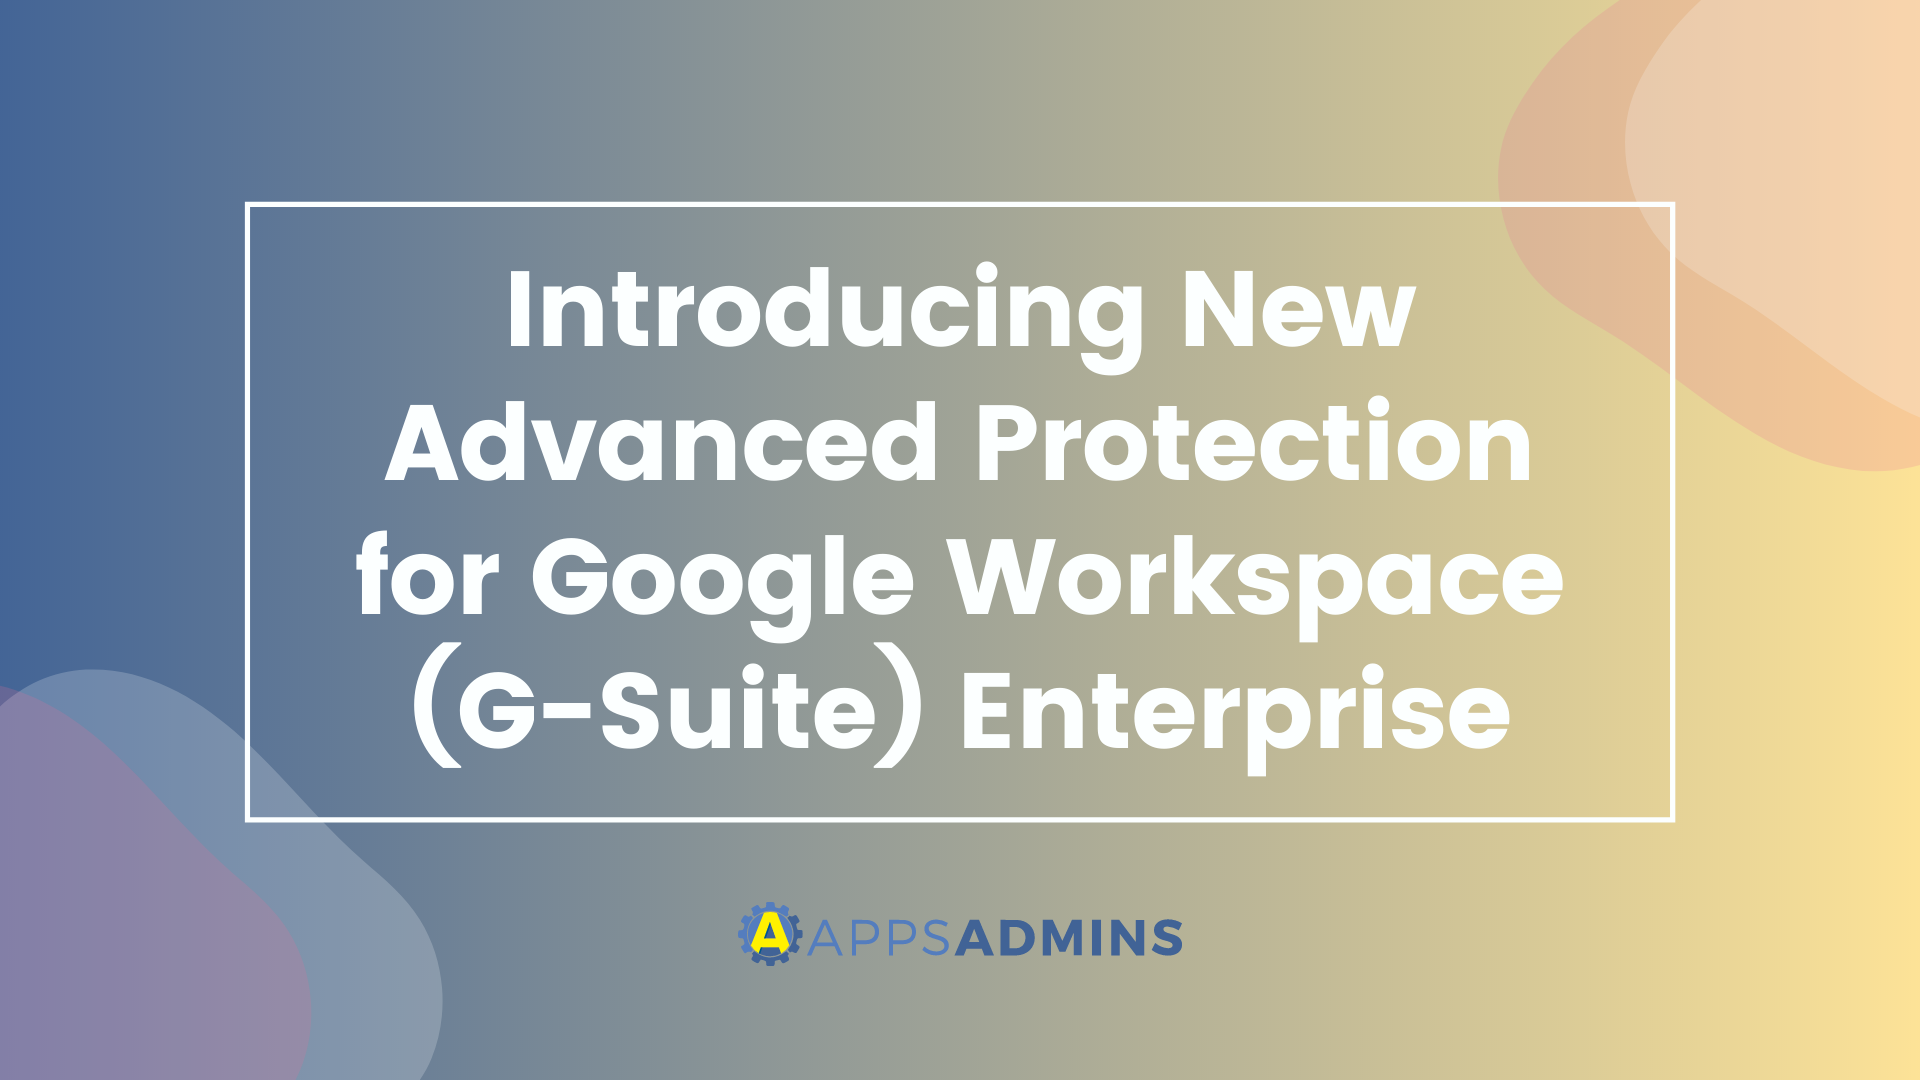 Introducing New Advanced Protection for G-Suite Enterprise